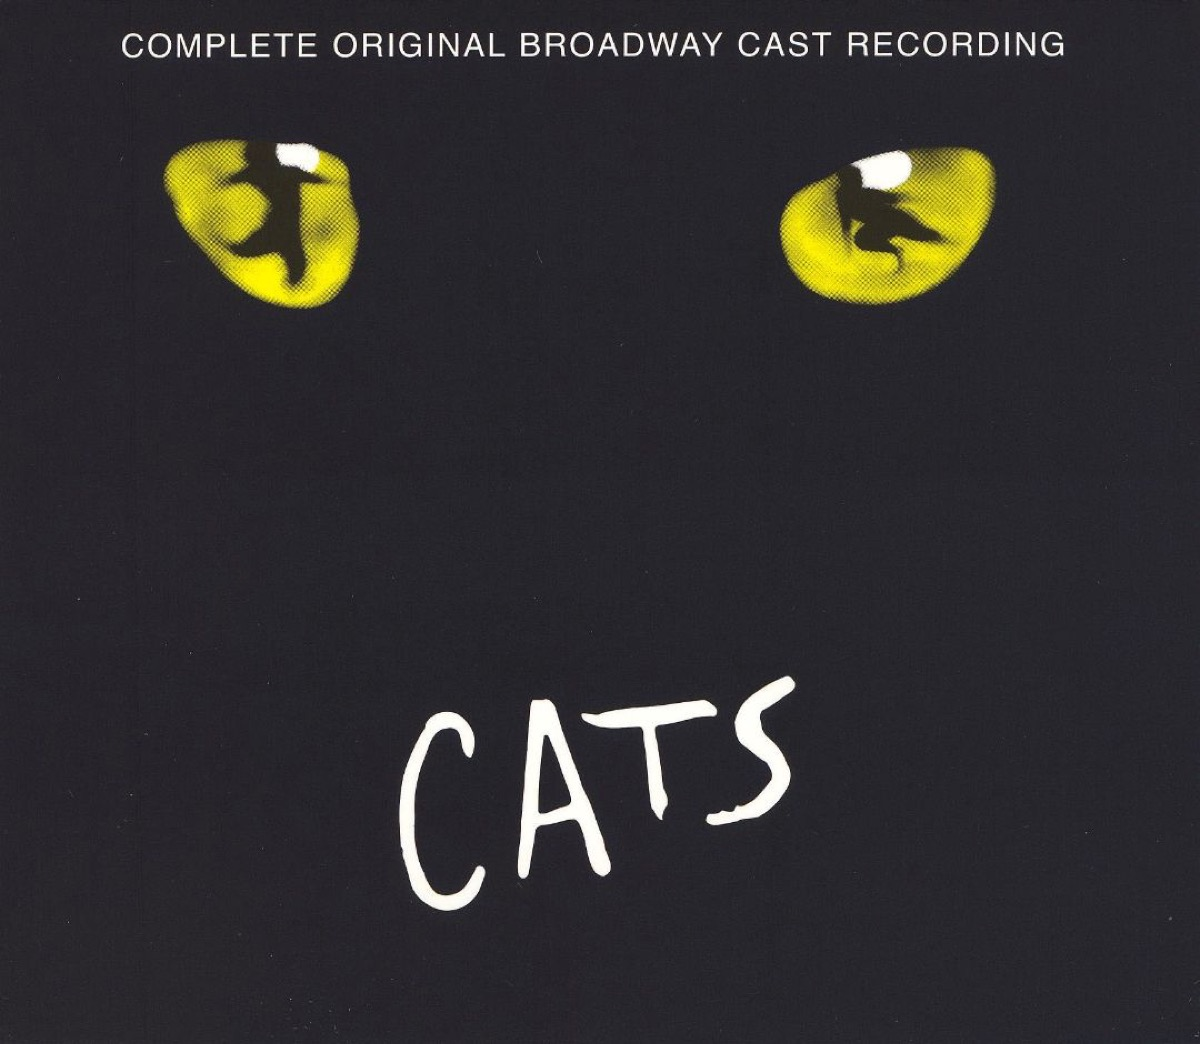 cats broadway recording, broadway tickets